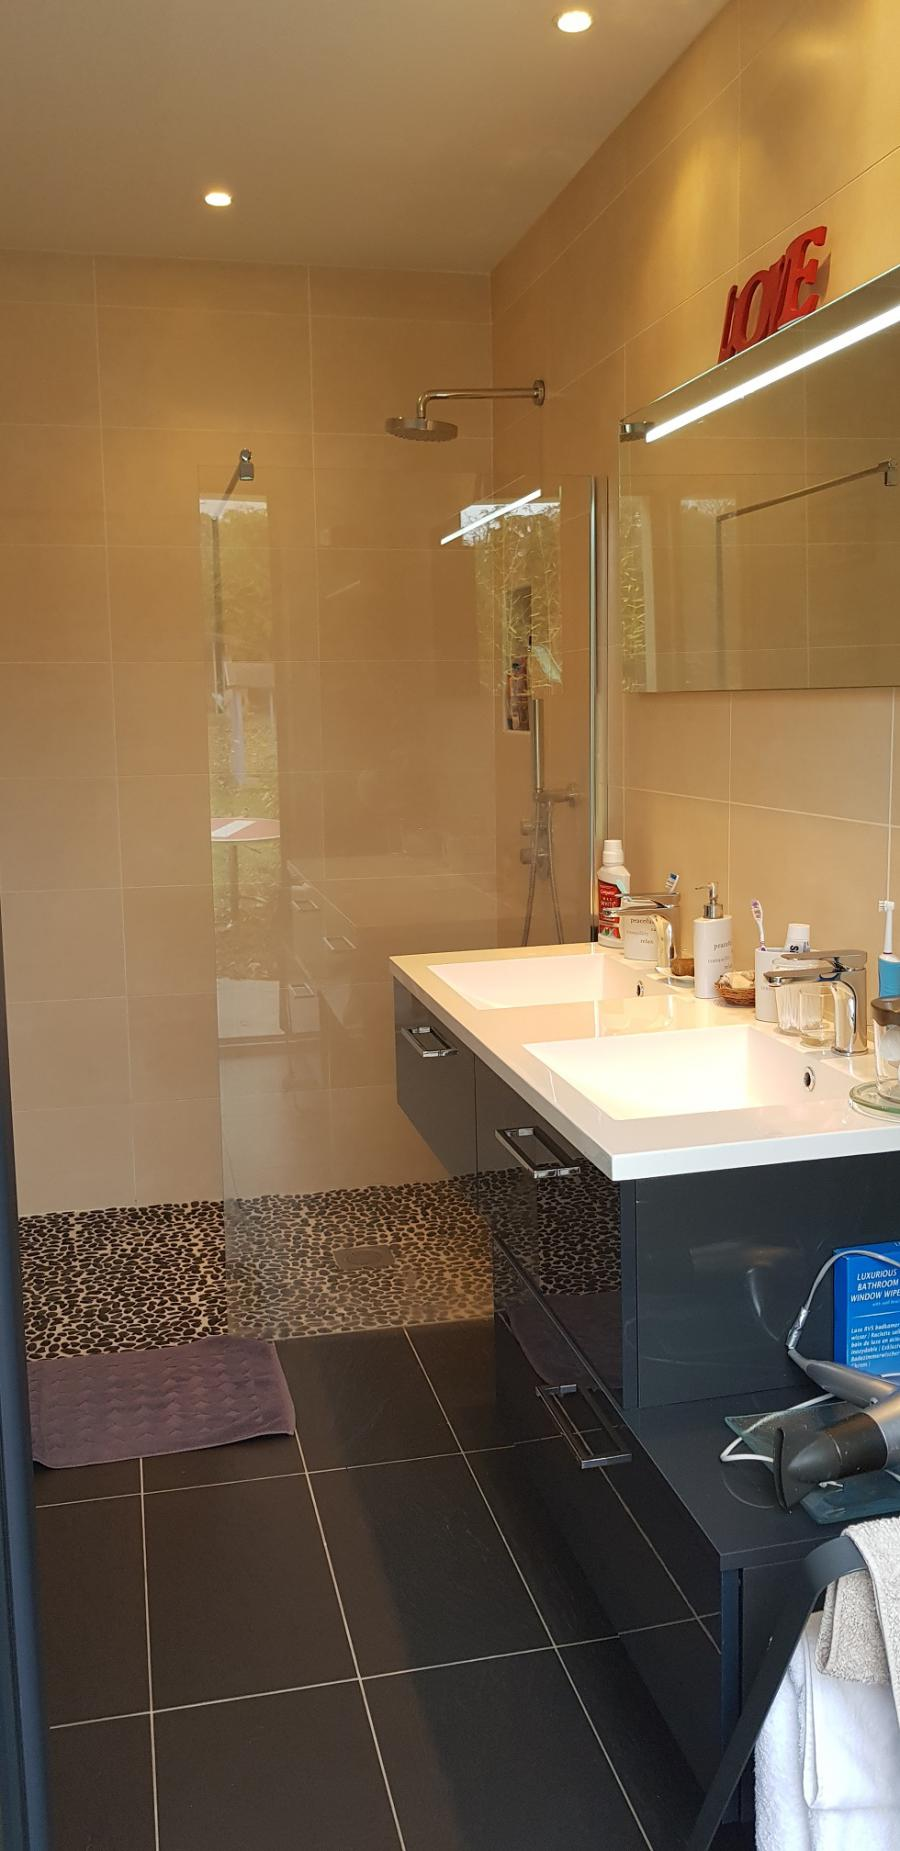 Photo 7 - Shower room